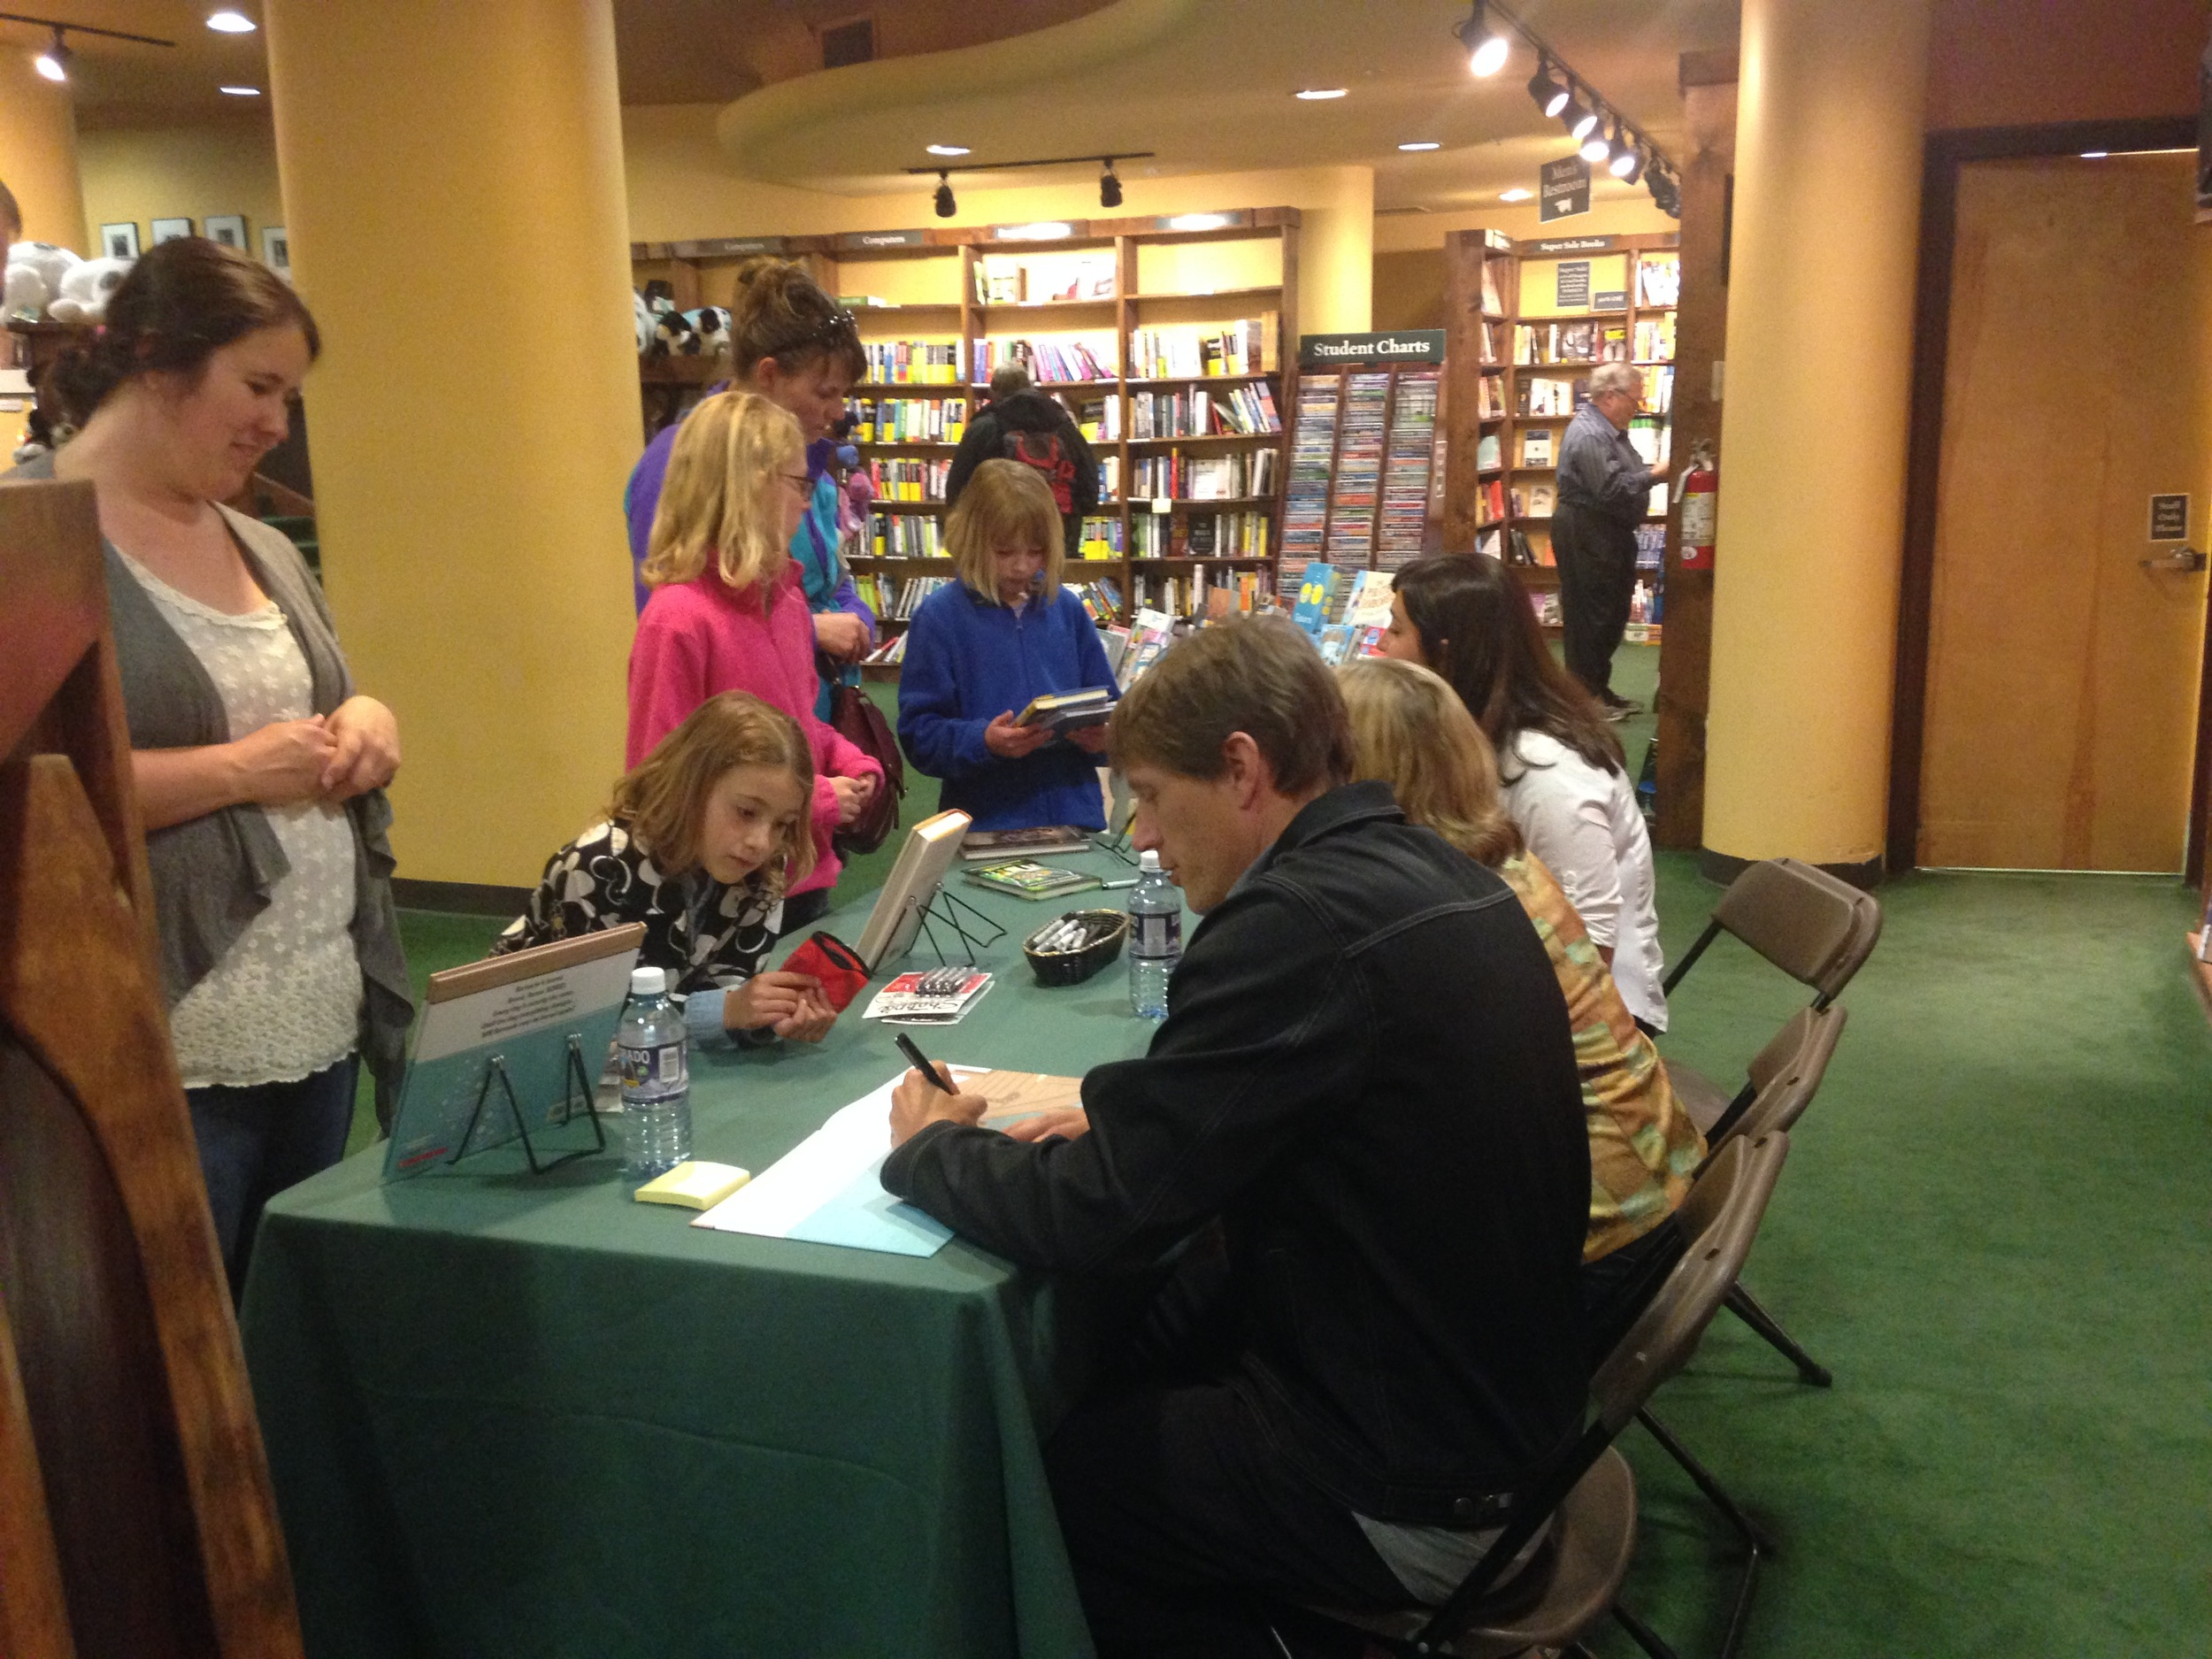 Signing books at the Tattered Cover, Colfax.